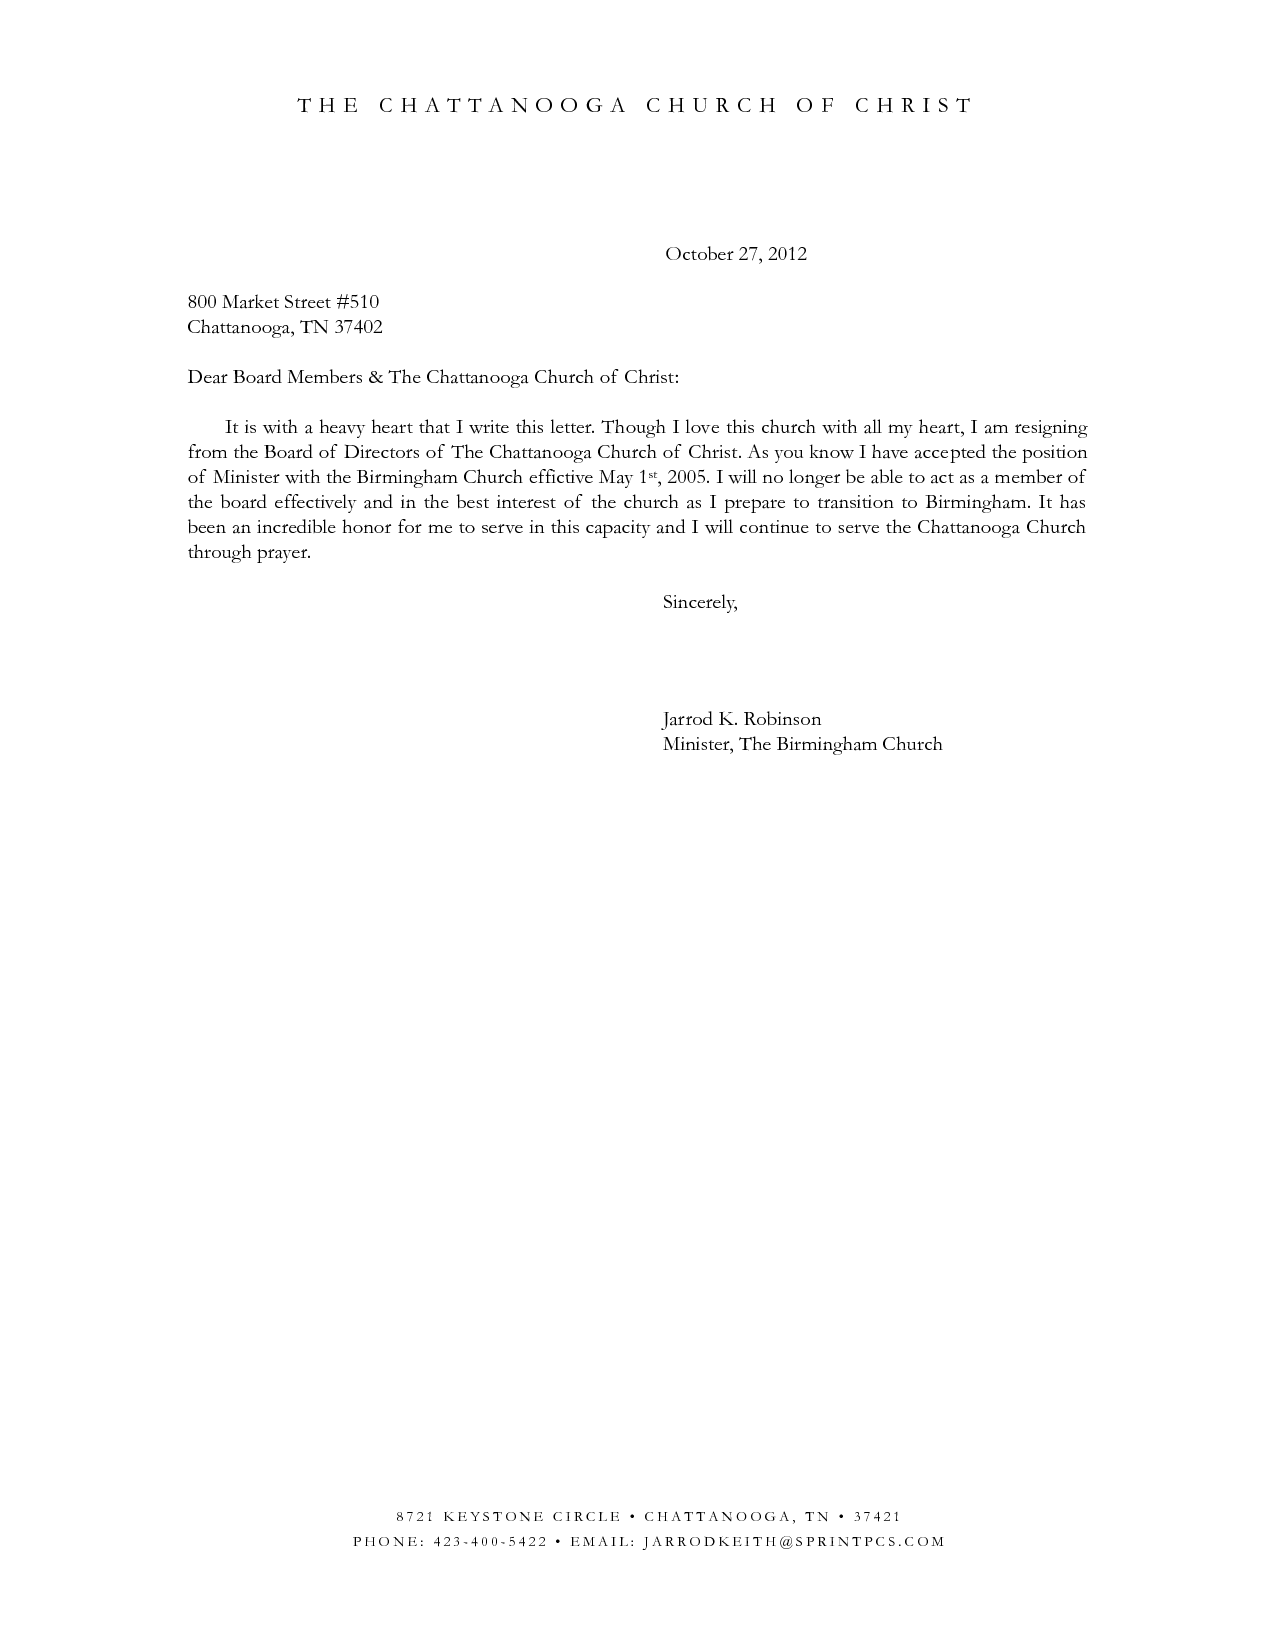 sample resignation letter from board of trustees